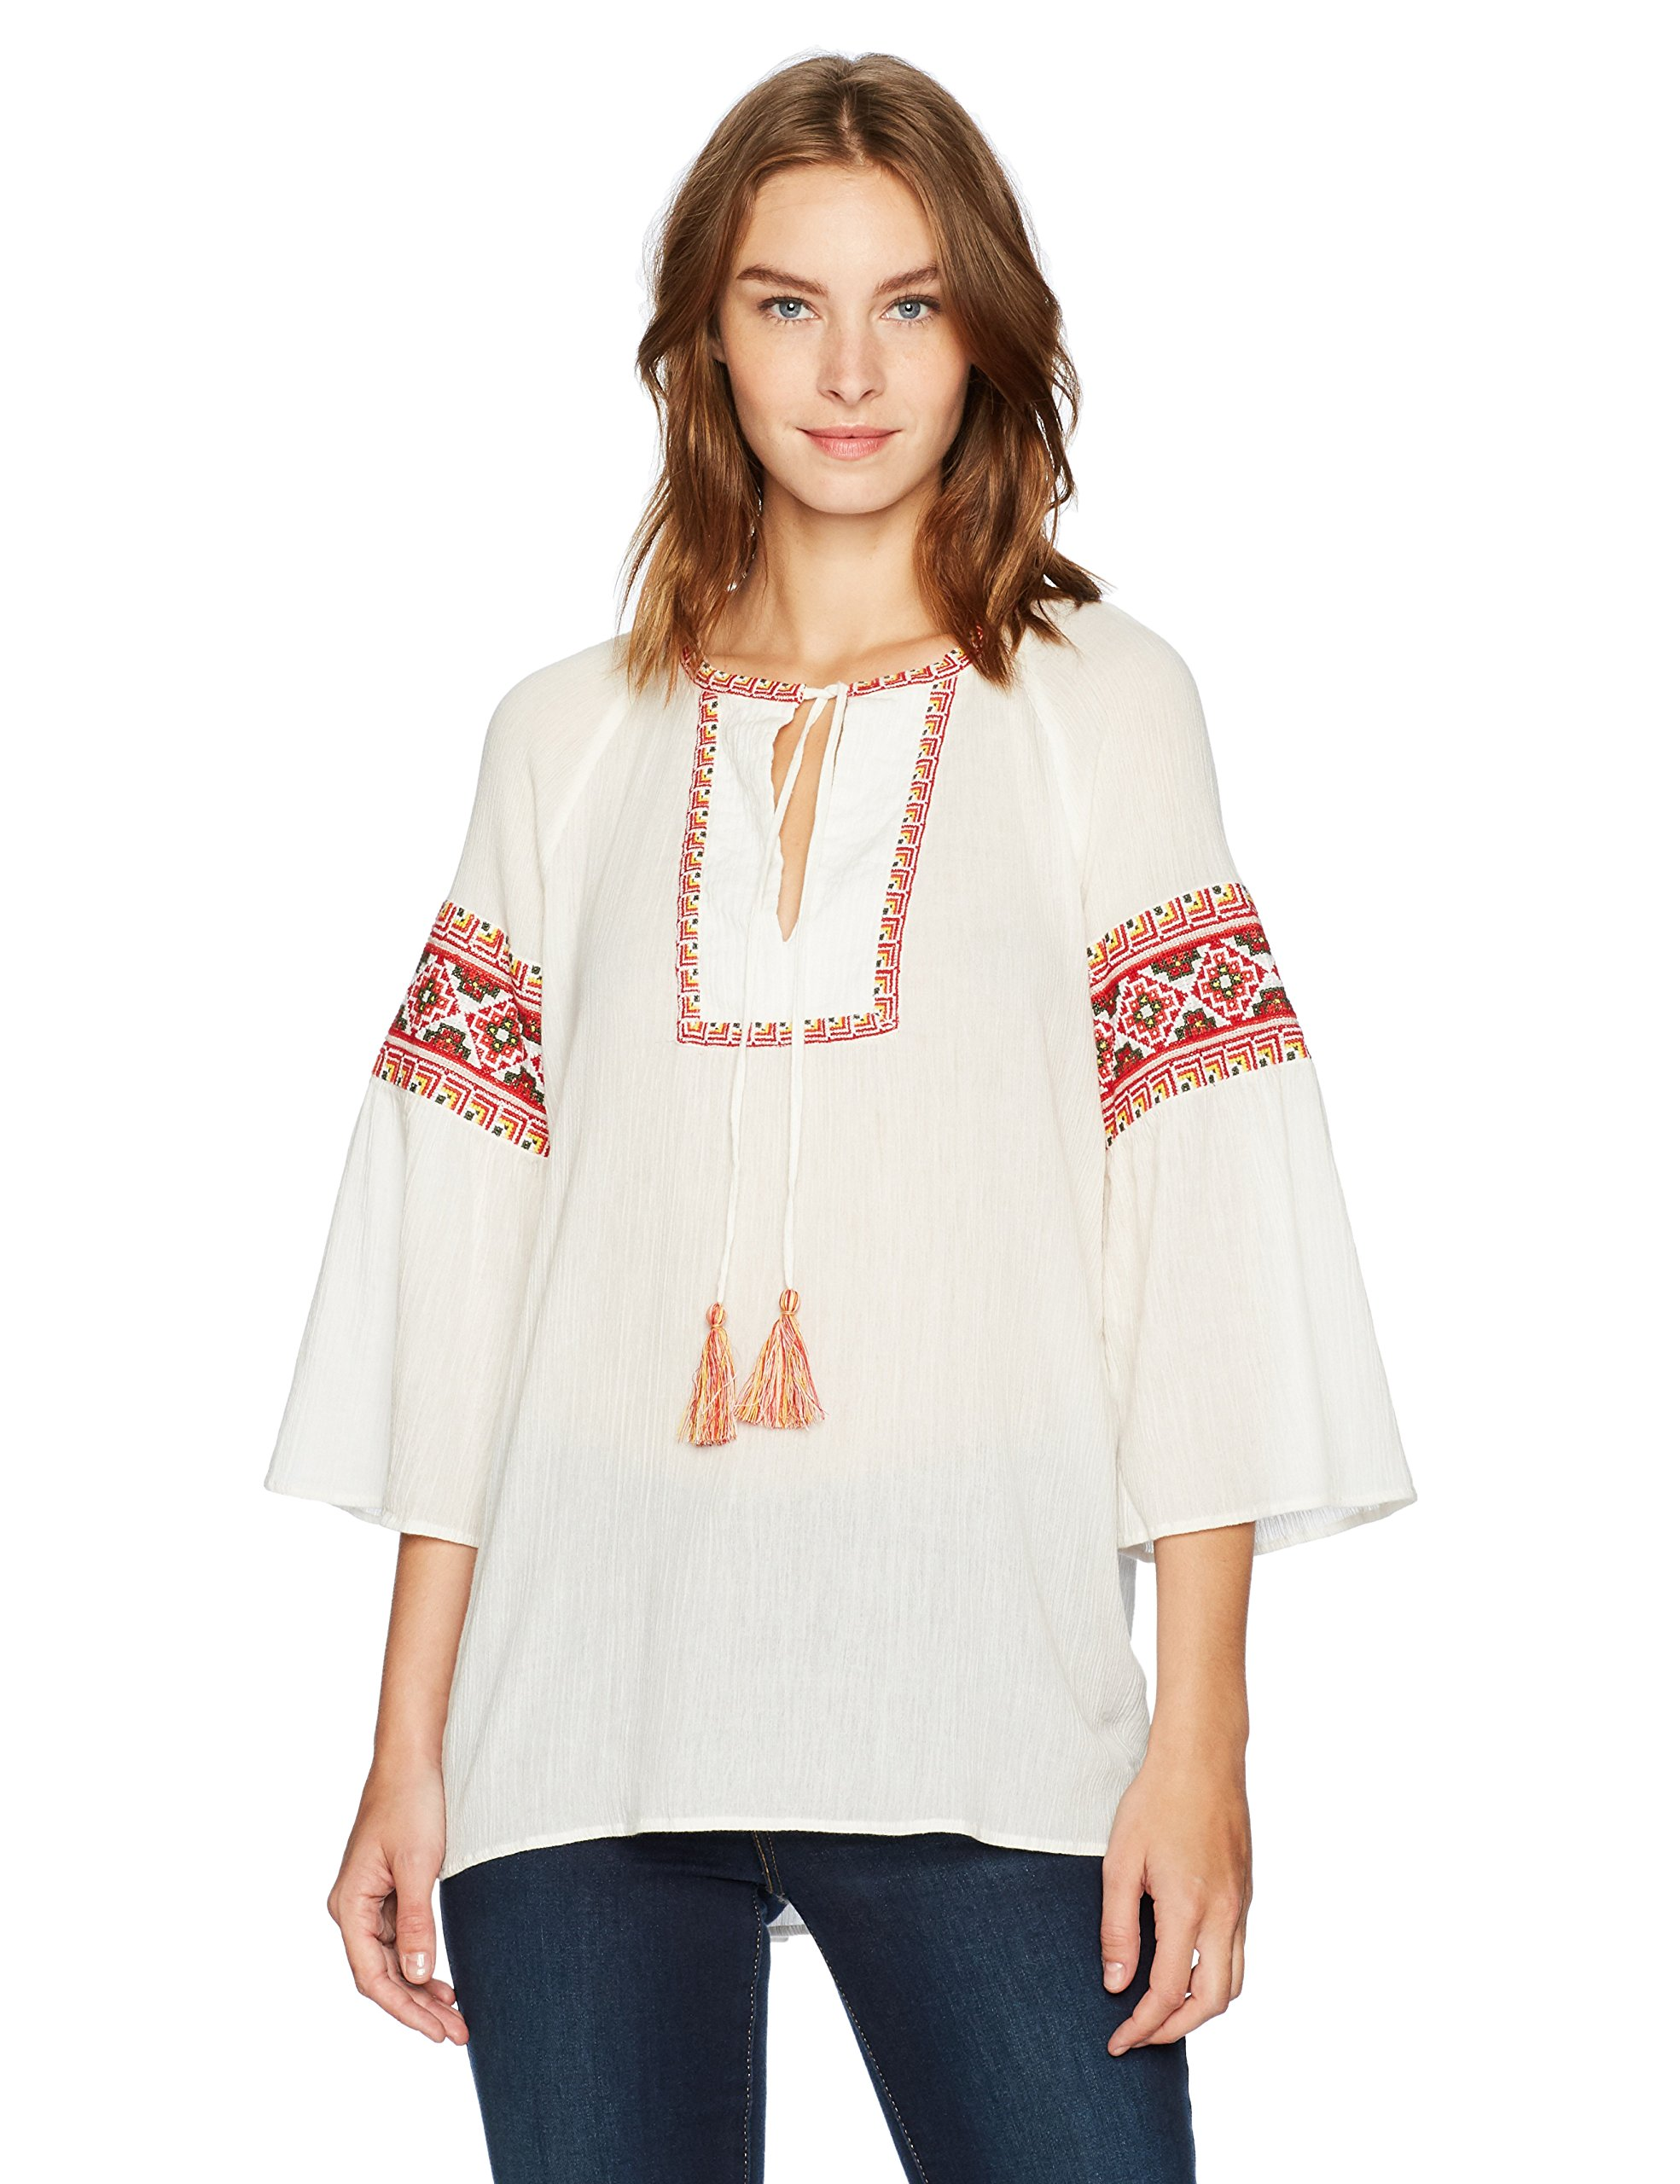 French Connection Women's Adanna Crinkle Top, Summer White/Multi, S